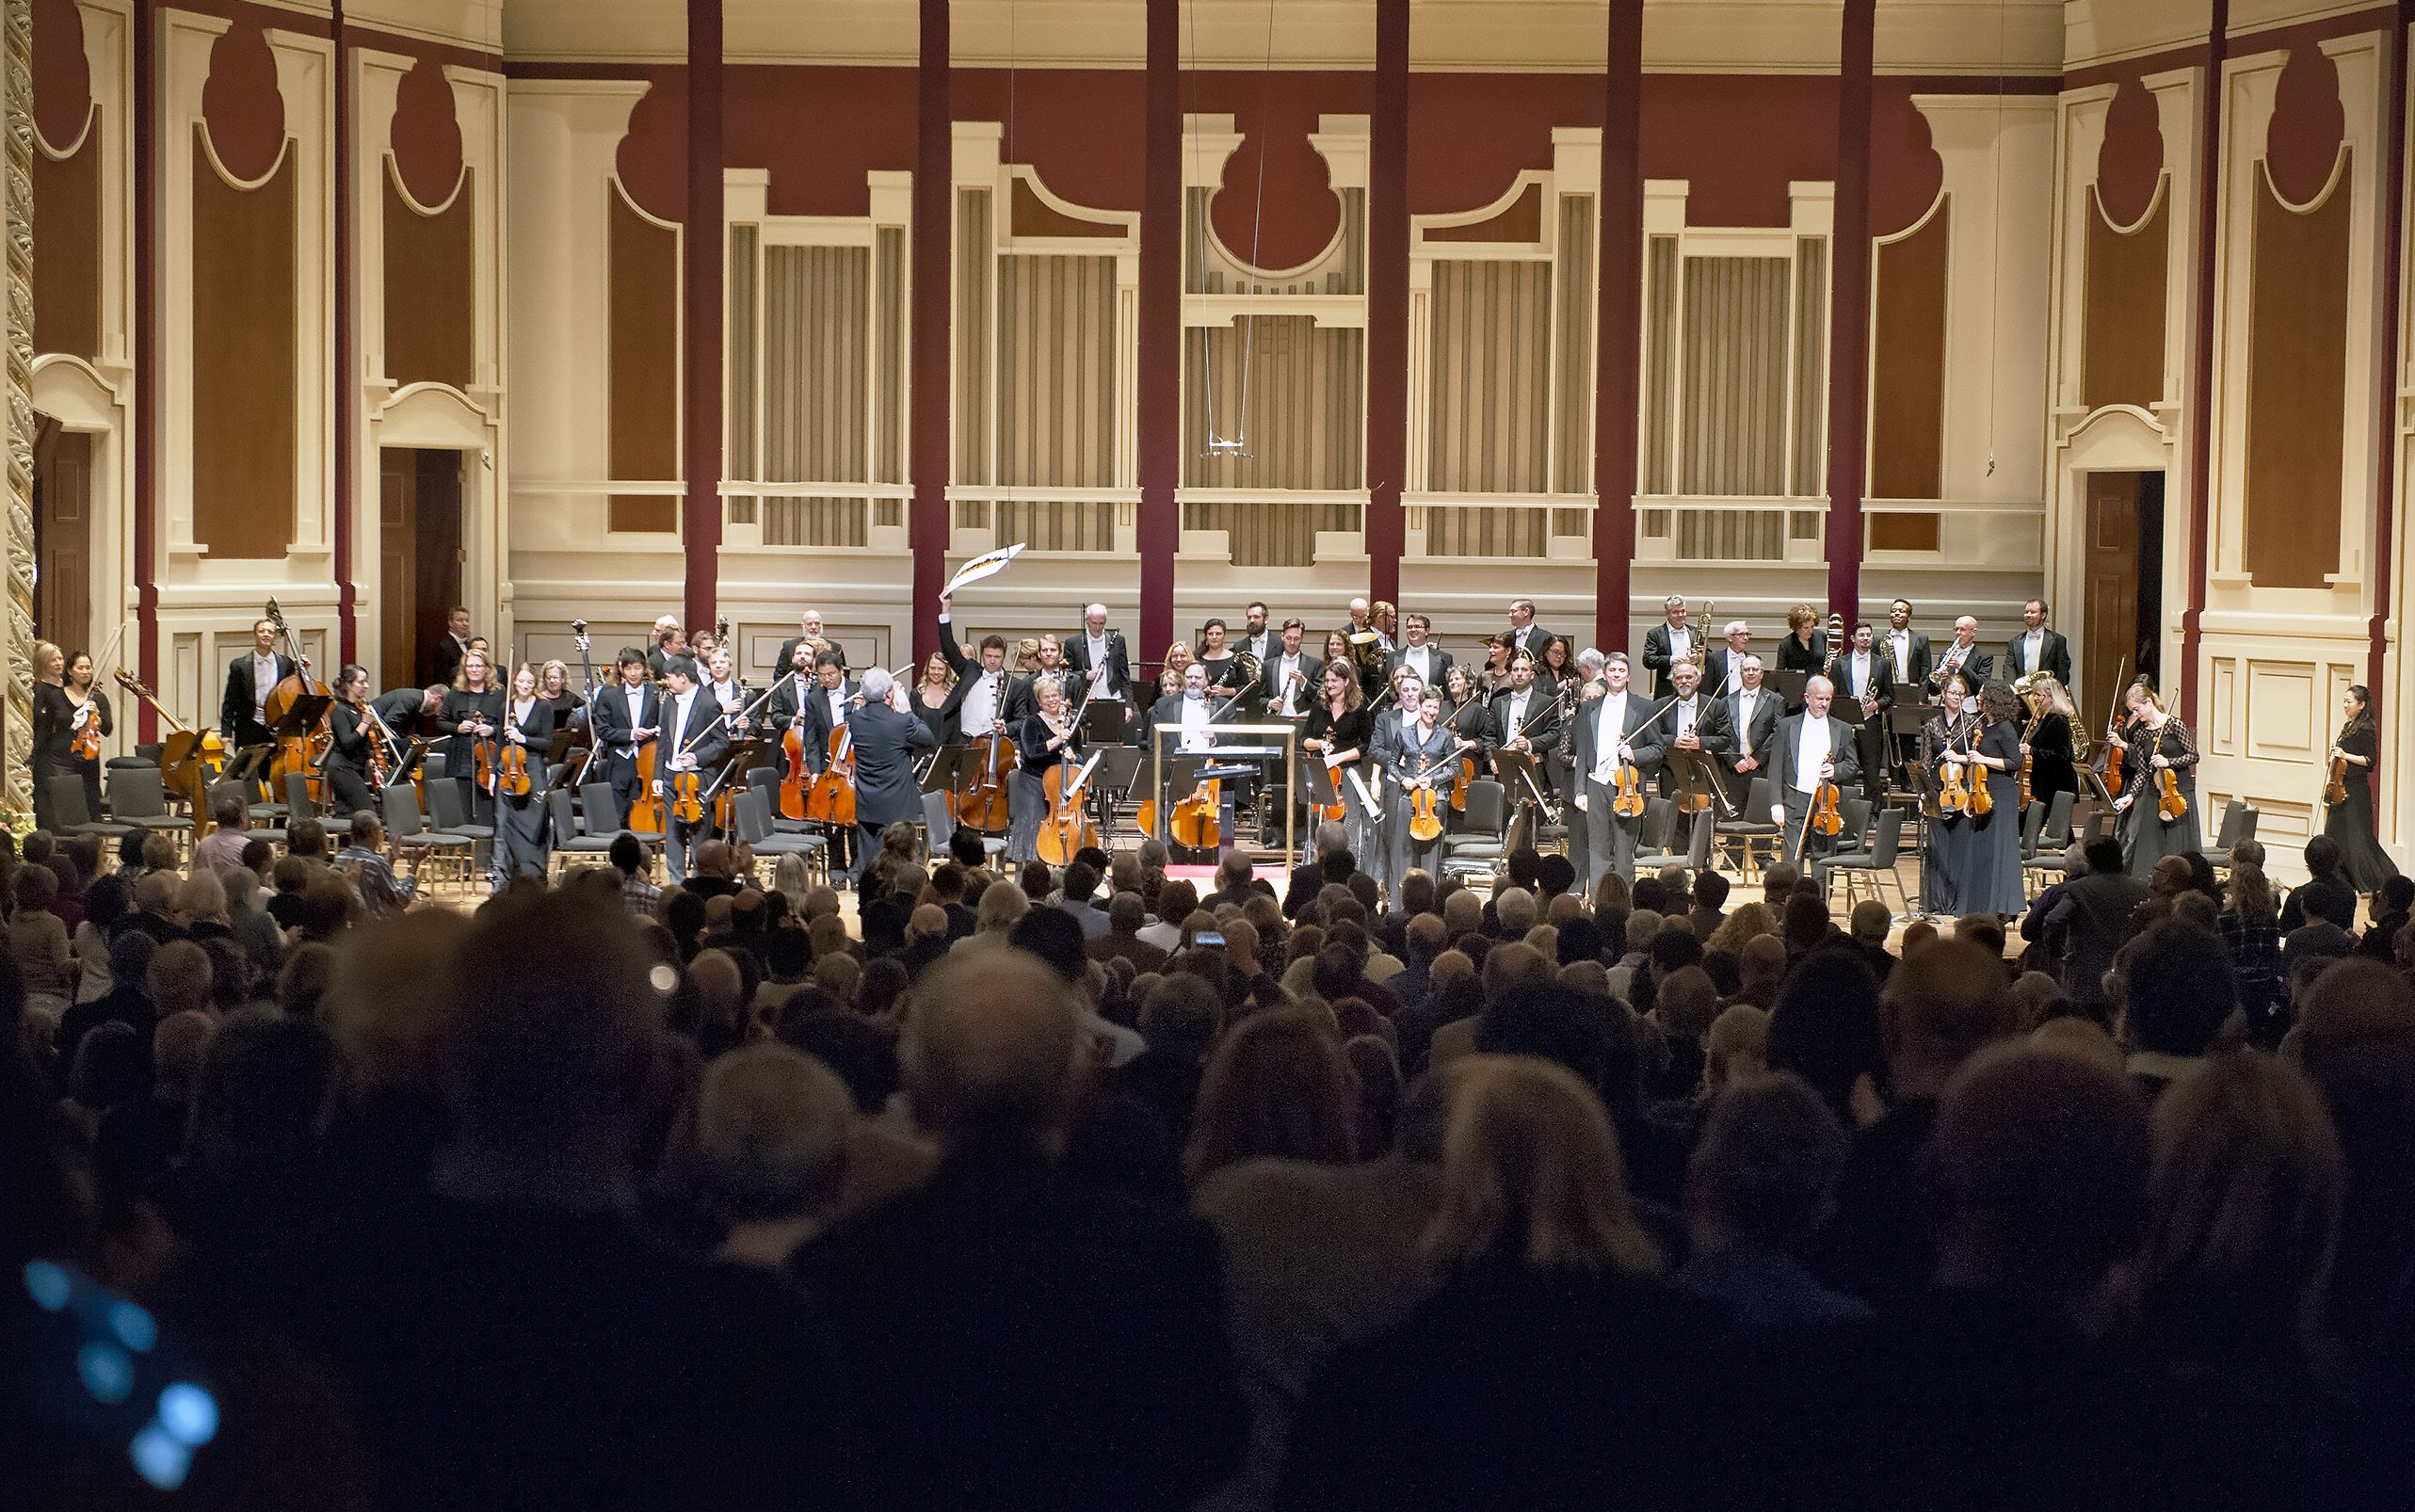 The Pittsburgh Symphony Orchestra Archives serves as the official repository for the historical records of the Pittsburgh Symphony Orchestra and Heinz Hall. The Archives Portal serves as the online counterpart to the Pittsburgh Symphony Archives located at Heinz Hall.